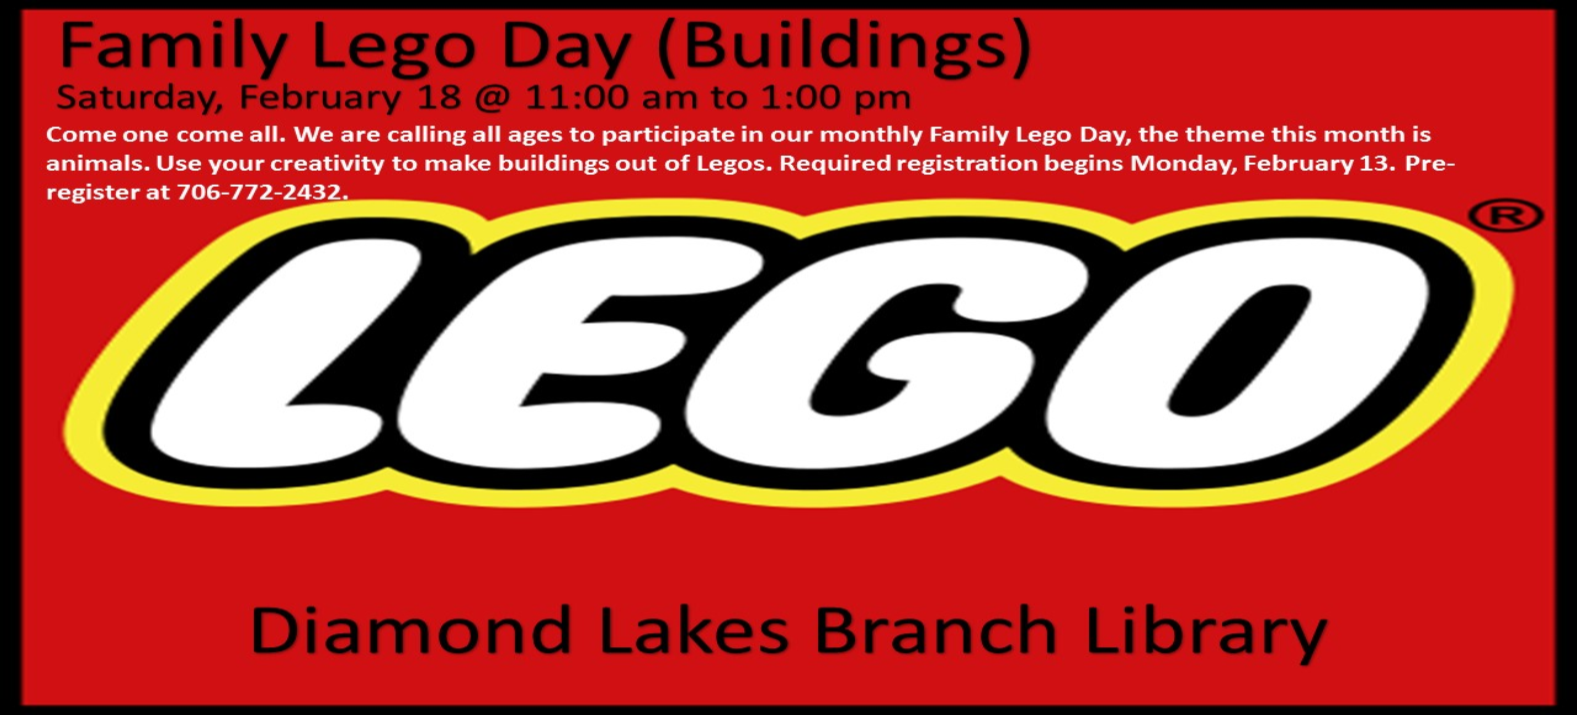 Family Lego Day